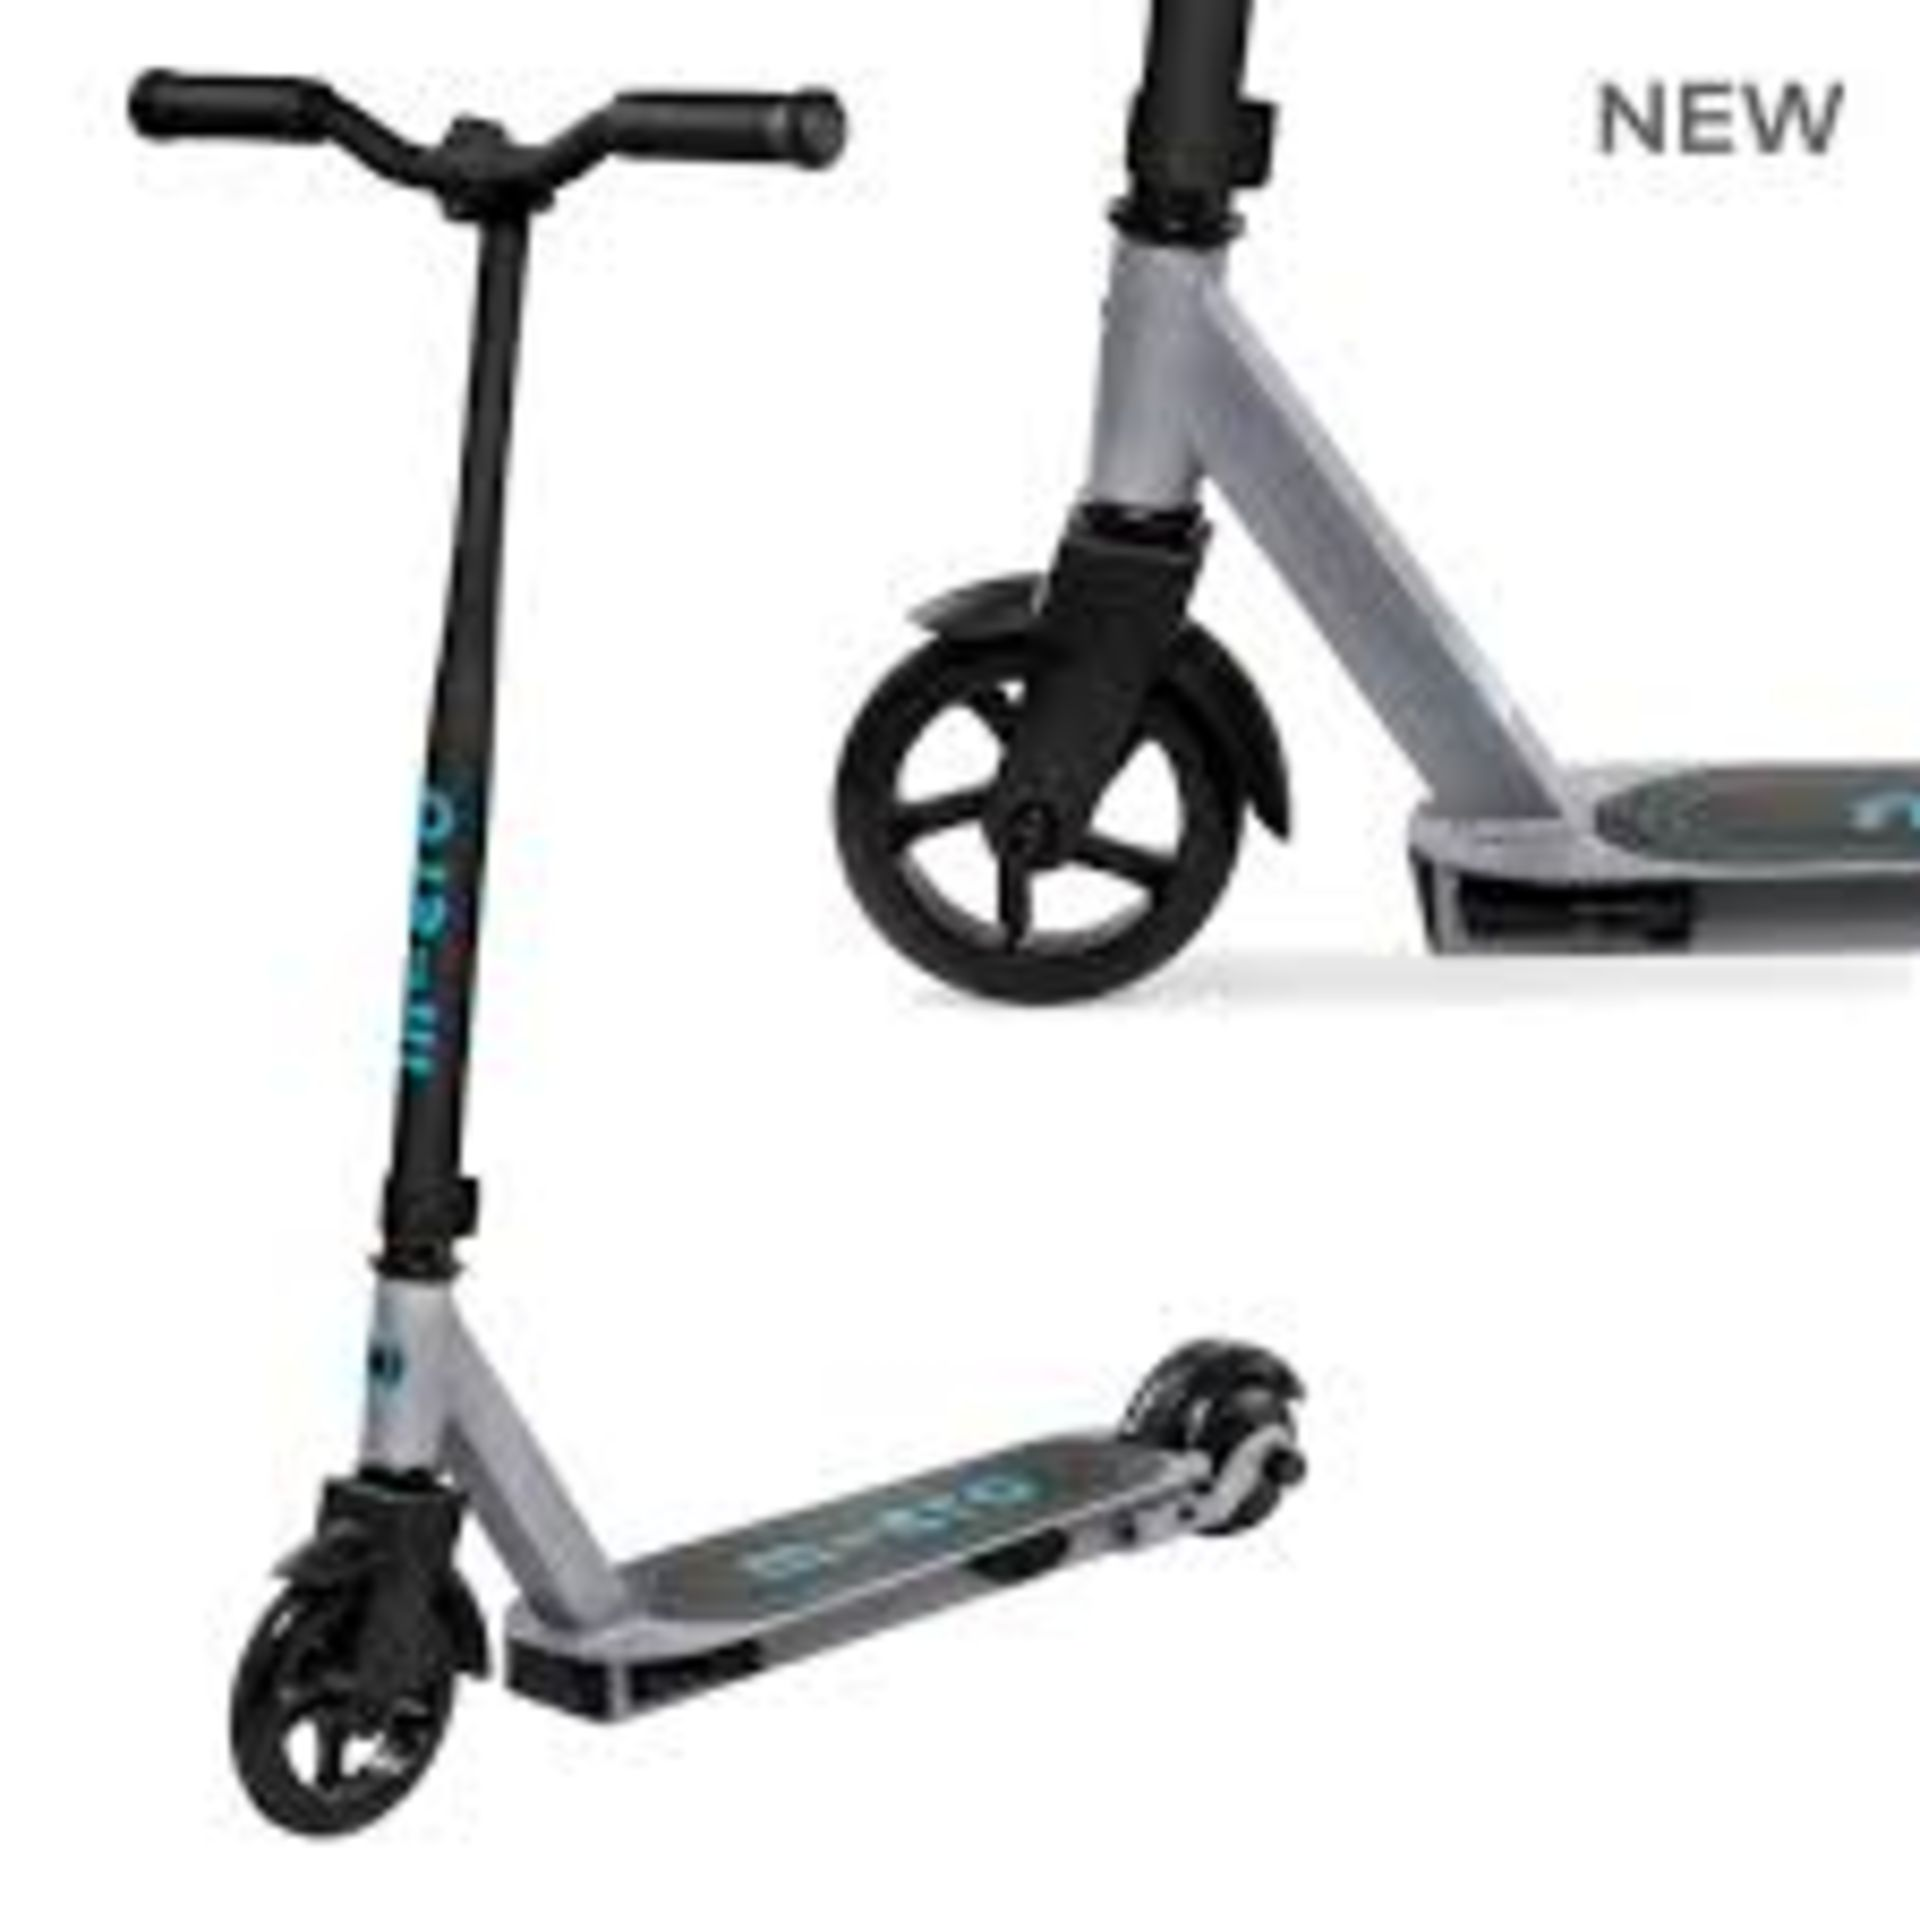 Lot 24 - Boxed Micro Sparrow Urban Freestyle, Hybrid Electric Scooter, RRP£450.00 (4684746) (Public Viewing